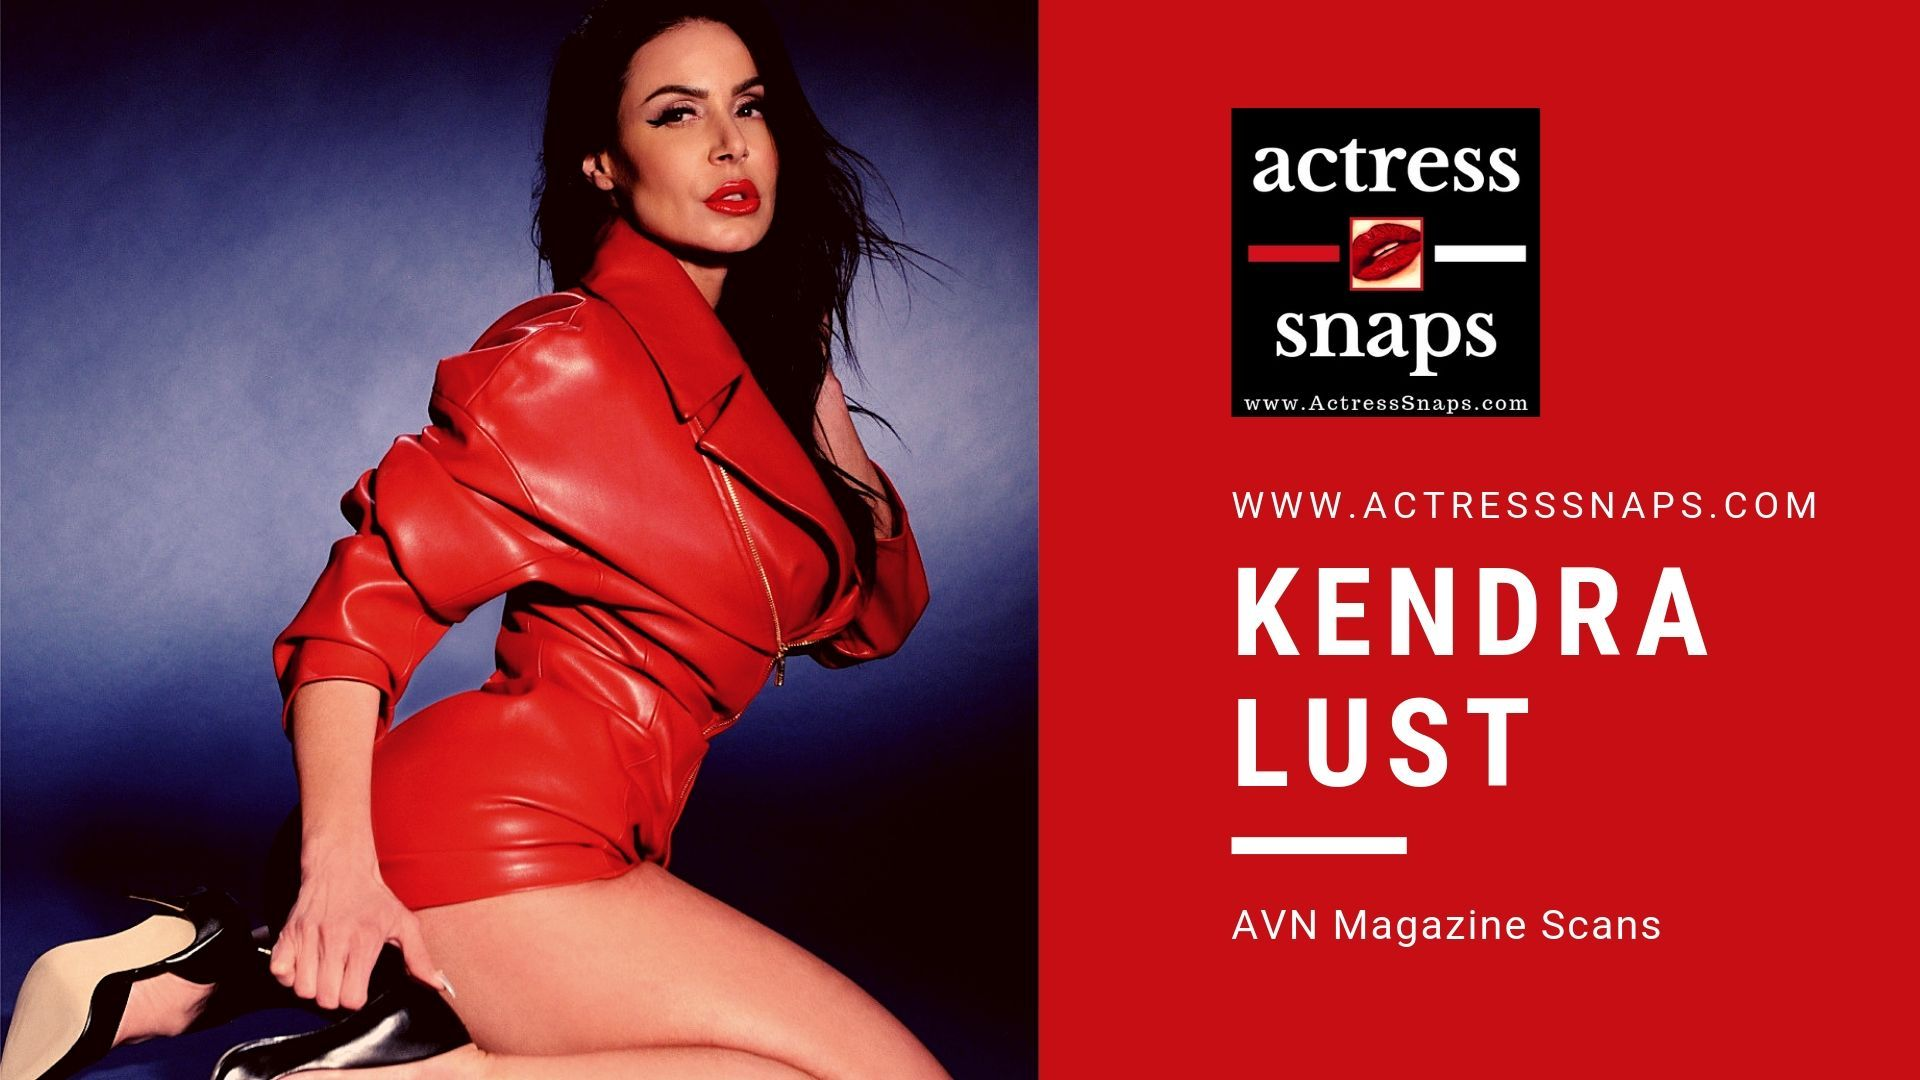 Kendra Lust - AVN Magazine Photos - Sexy Actress Pictures | Hot Actress Pictures - ActressSnaps.com